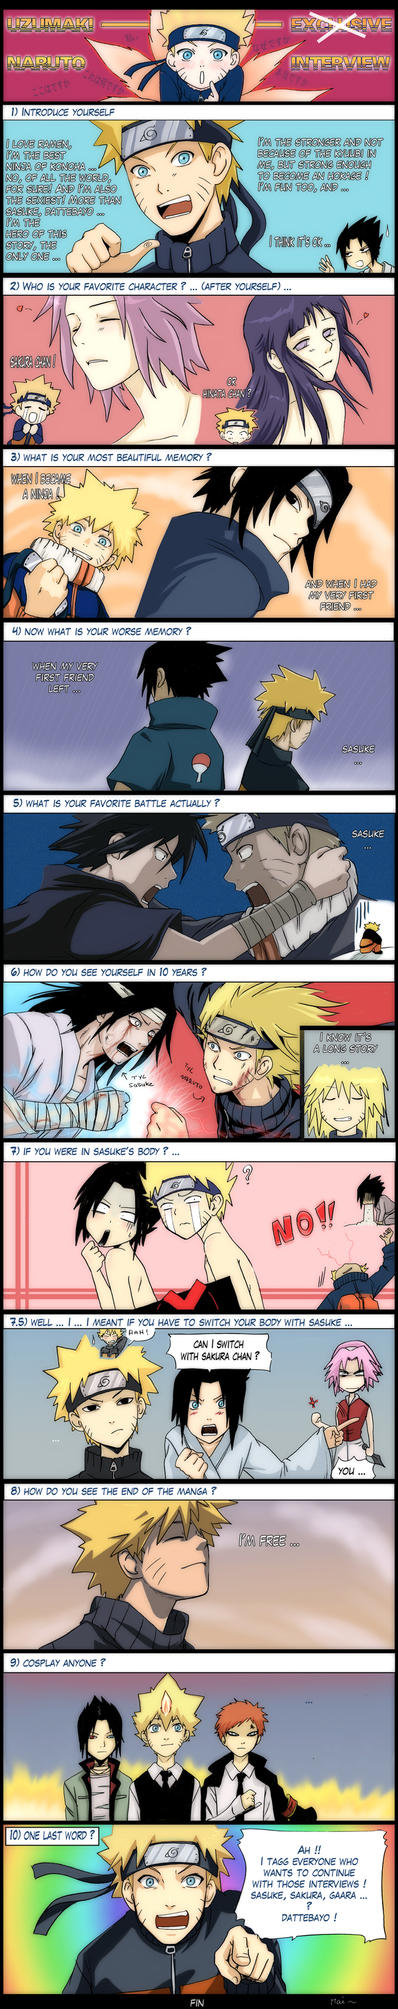 Naruto interview by kuro-mai